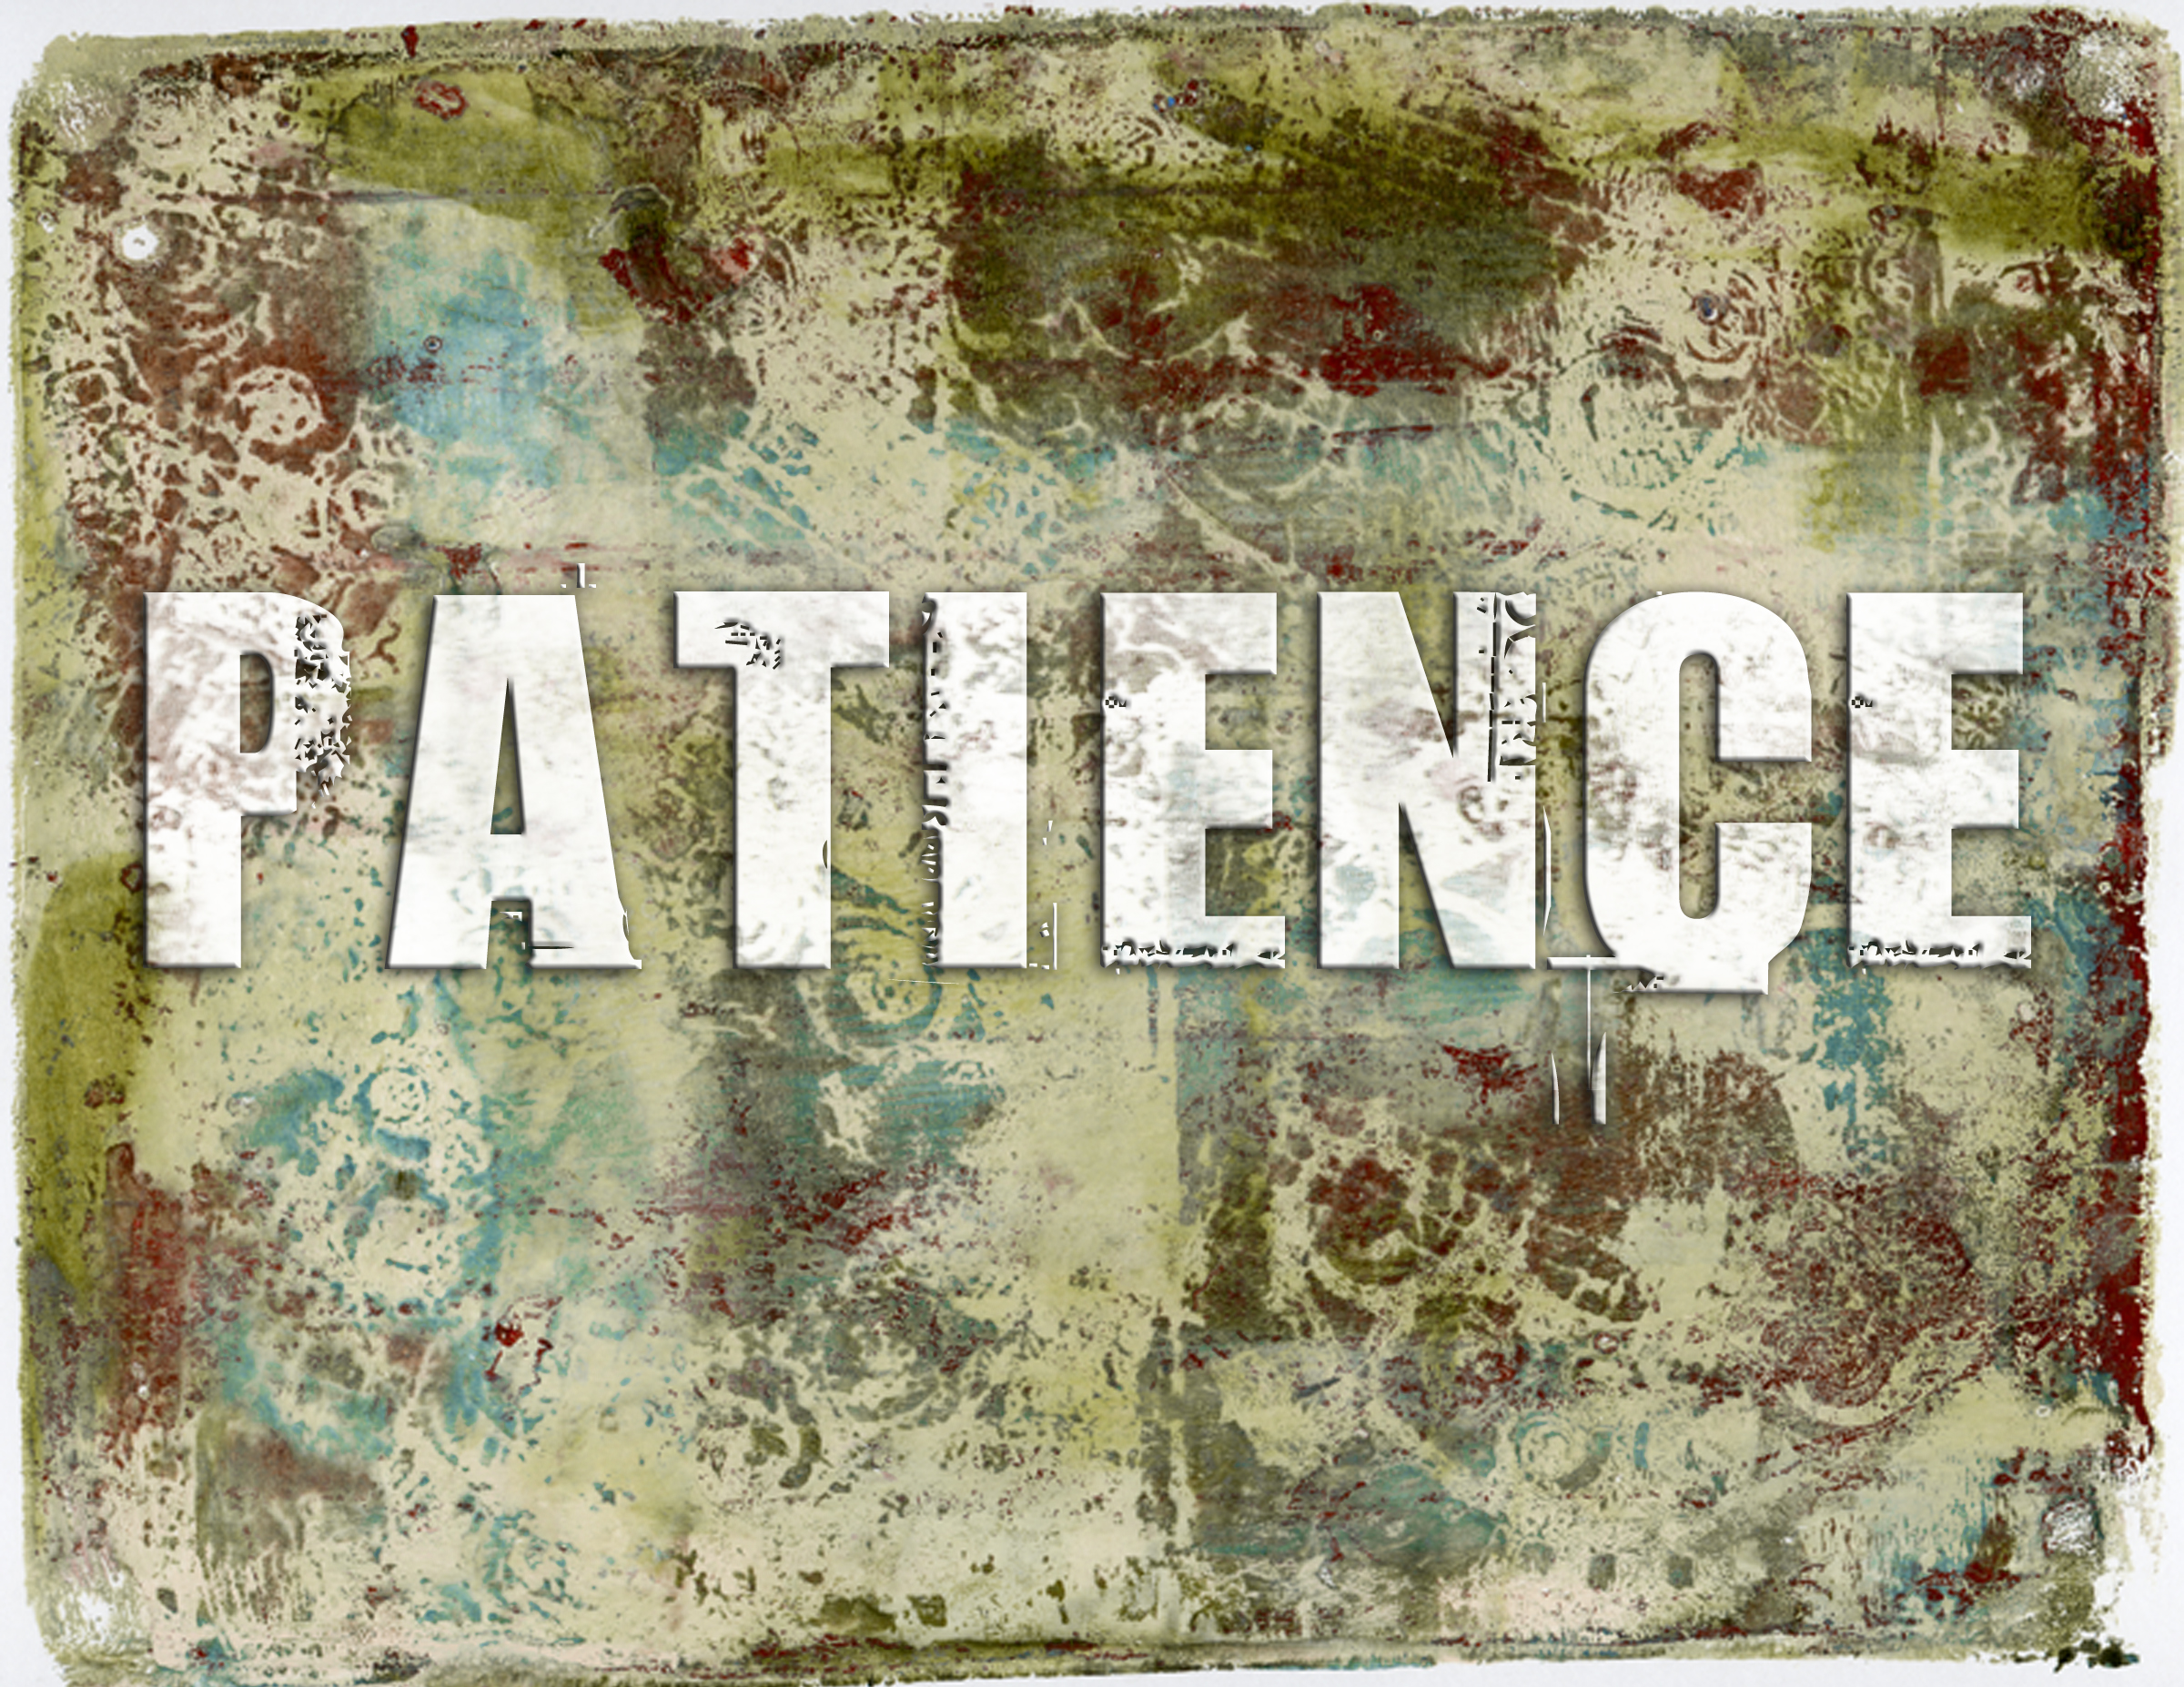 Patience is my One Little Word - Ursula's Digital Mixed Media